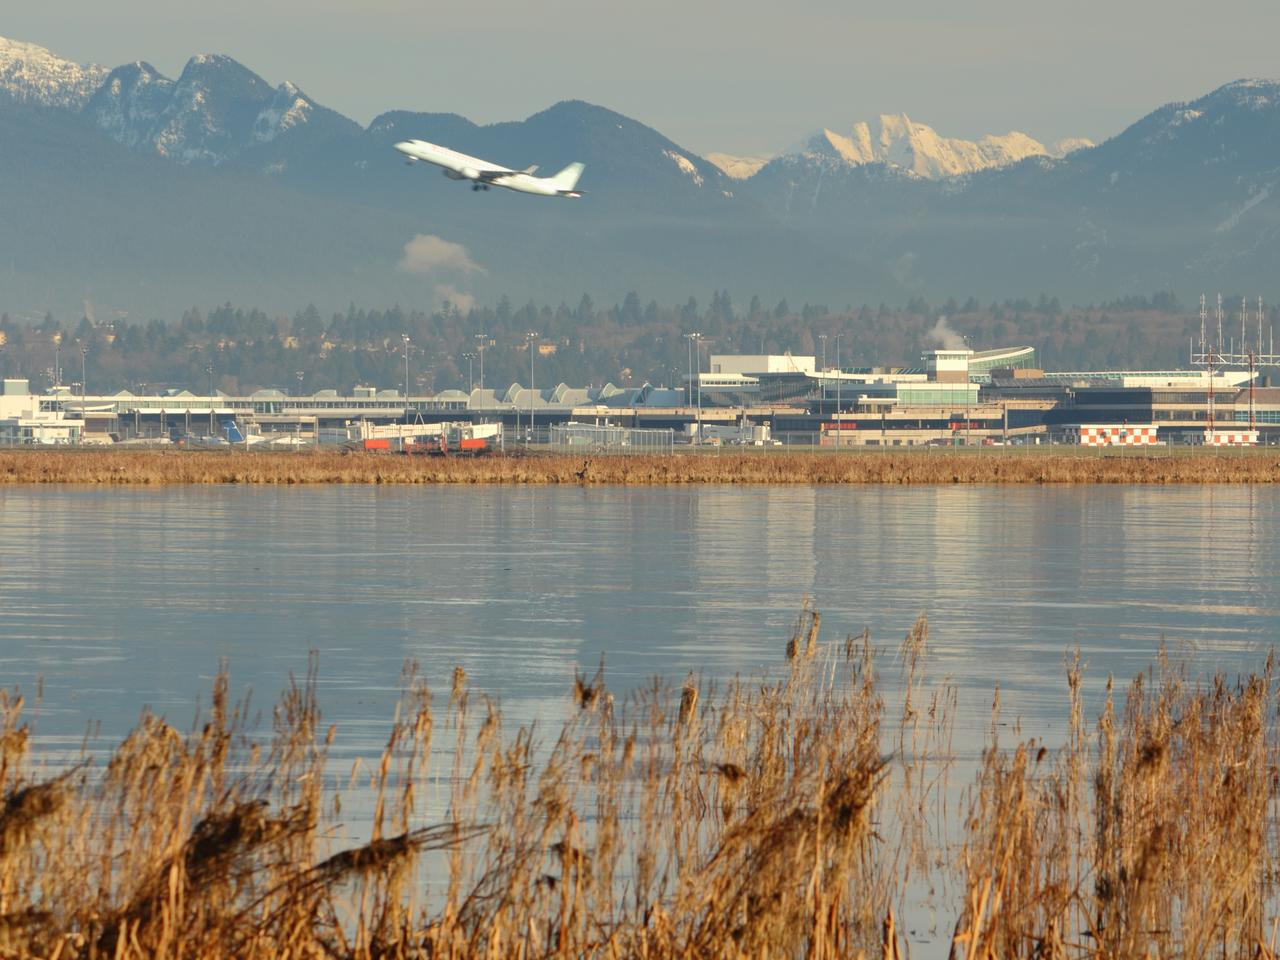 An airplane taking off at Vancouver International Airport, YVR, with the Coast Mountains in the background and the Fraser River in the foreground. British Columbia, Canada.